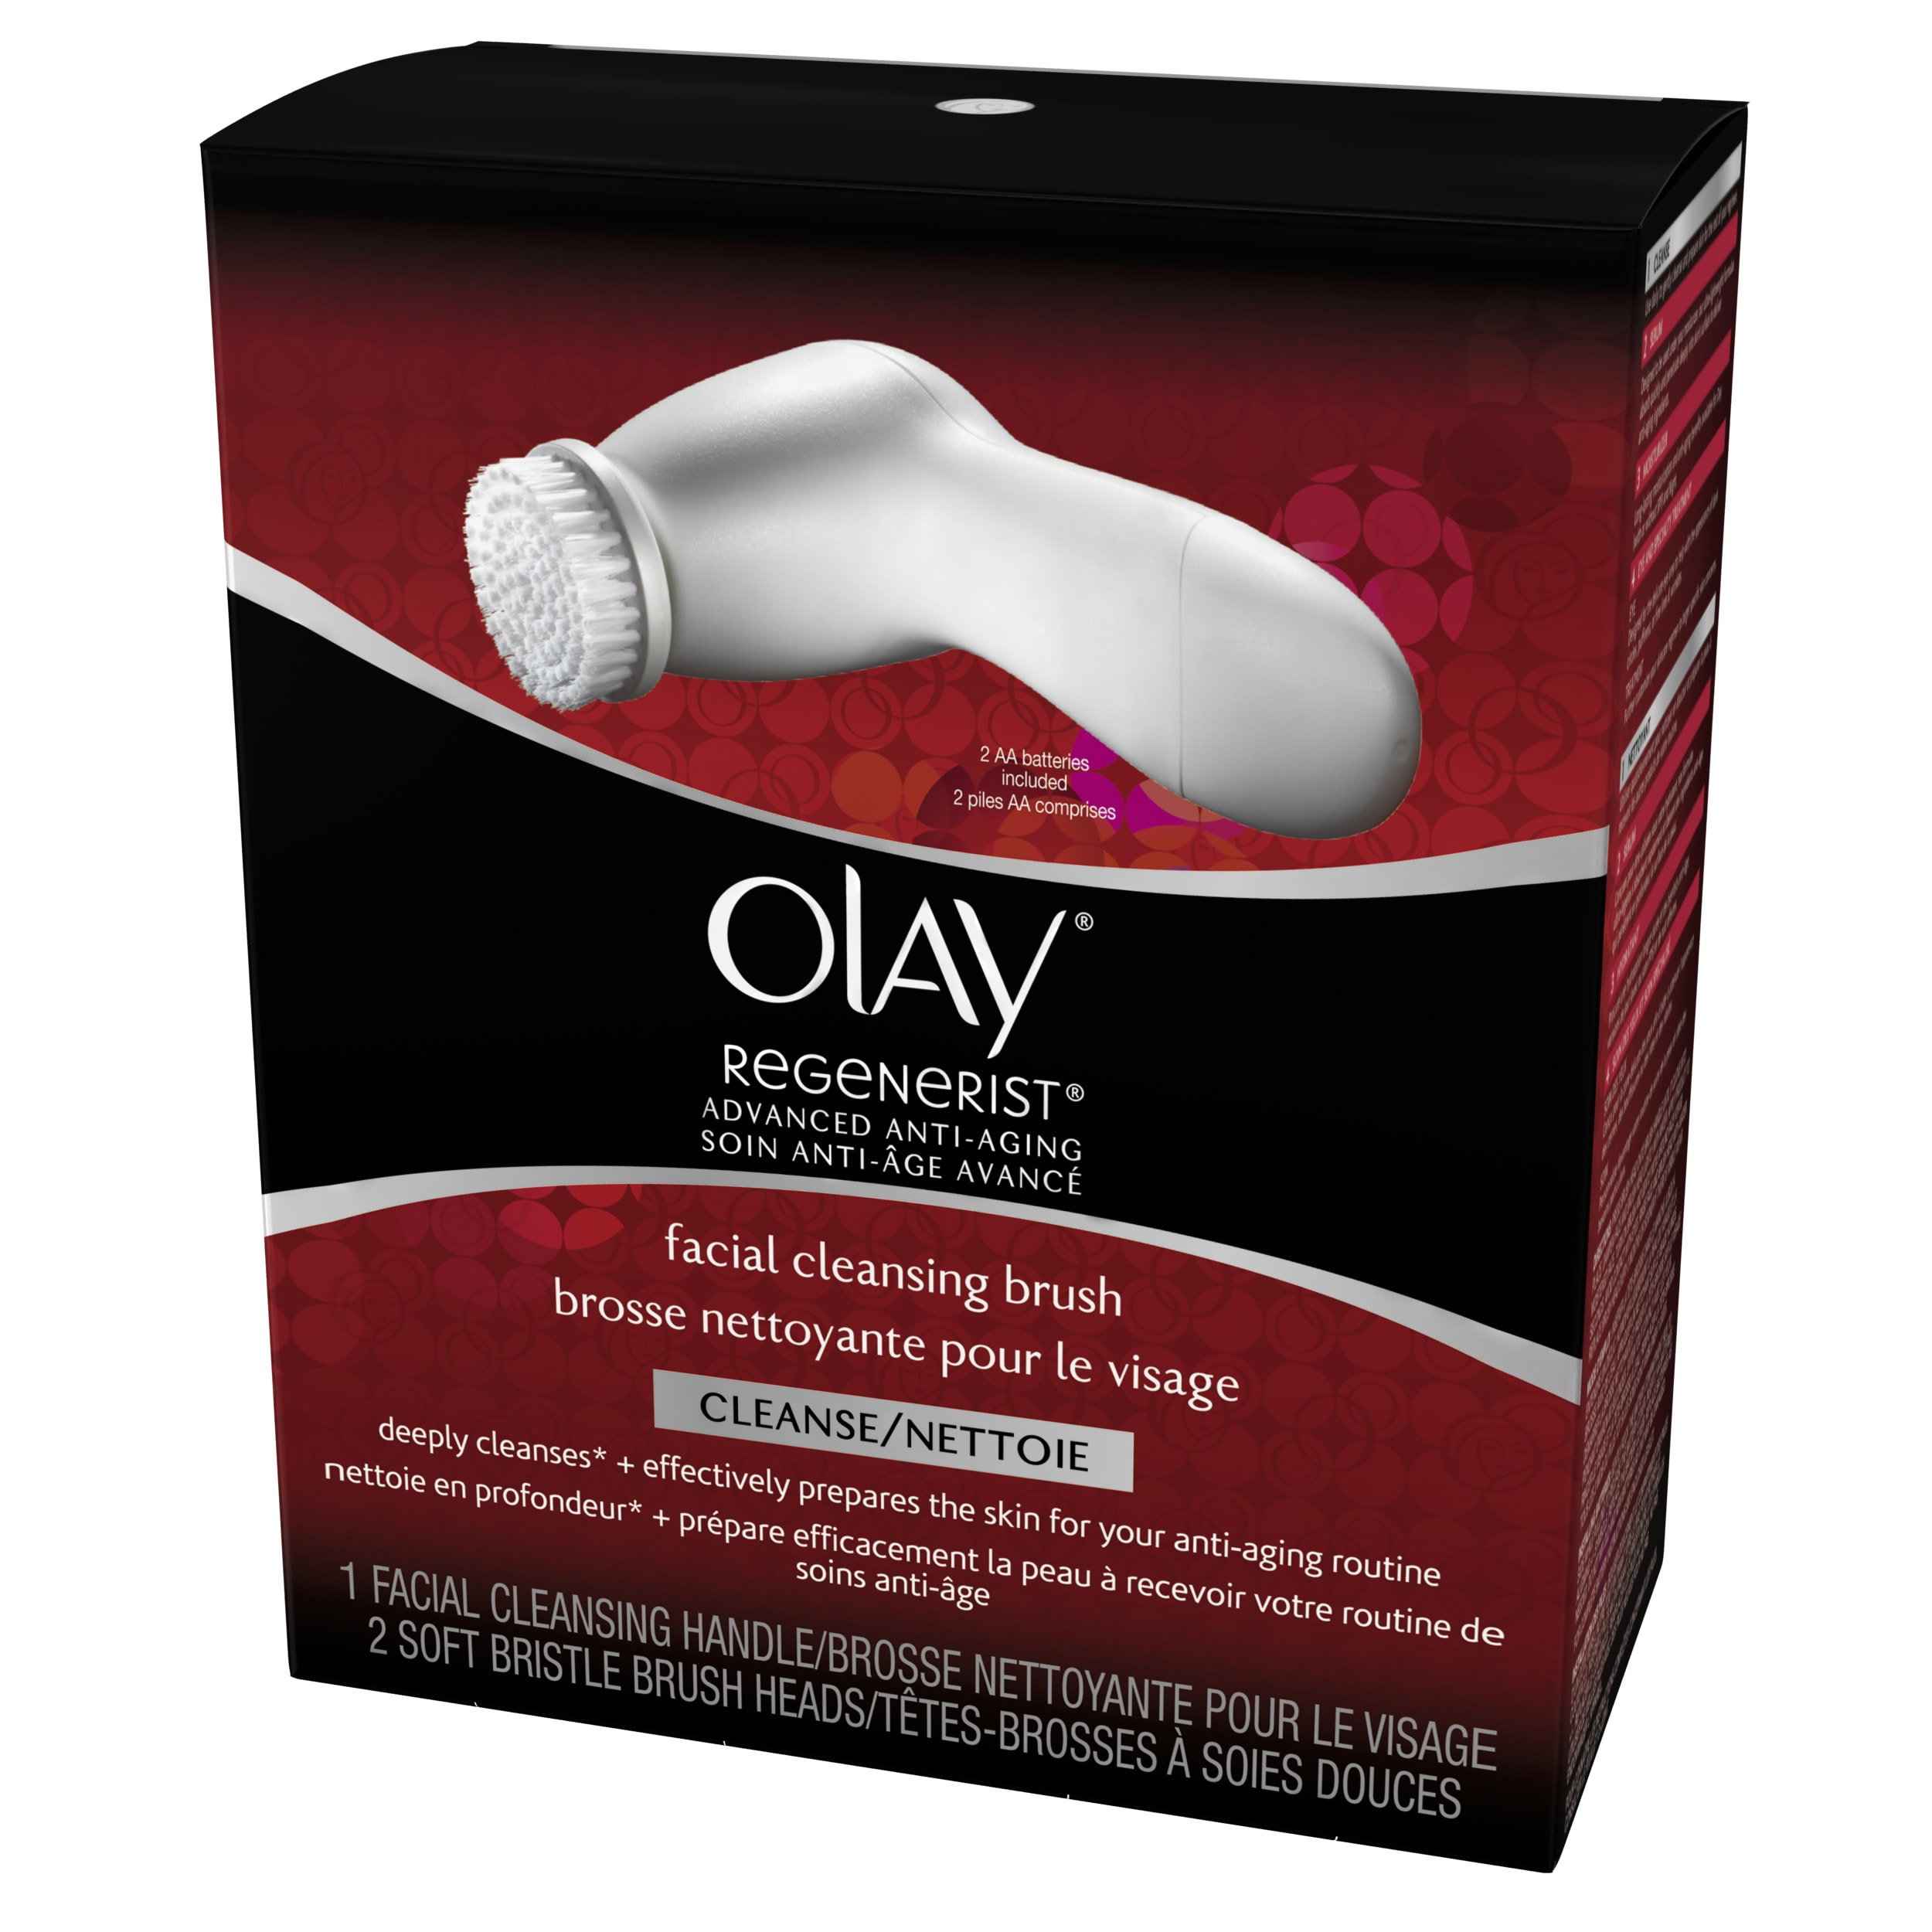 Regenerist Advanced Anti Aging Facial Cleansing Brush